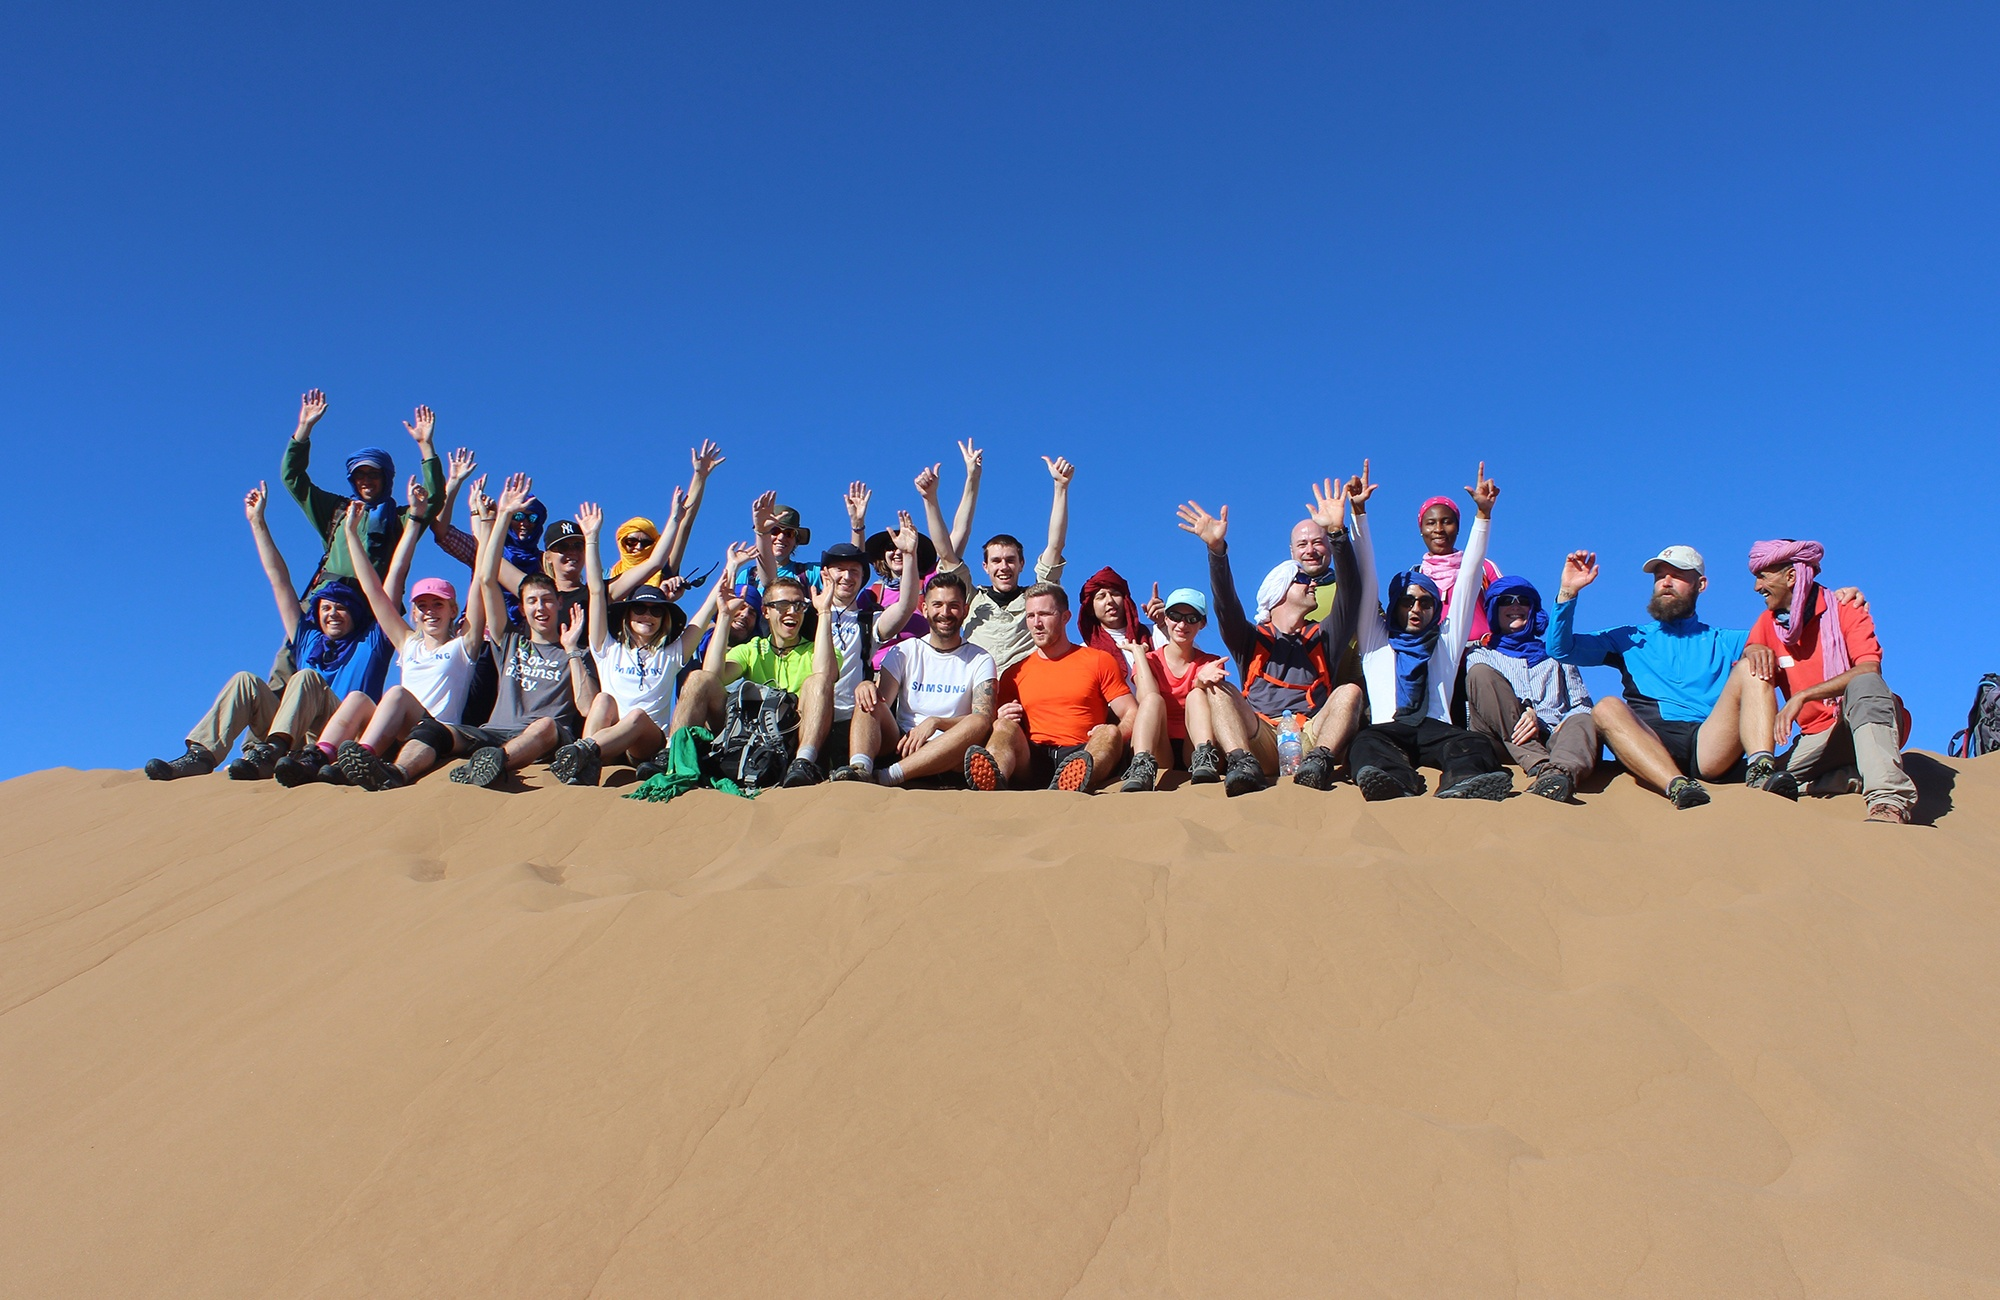 Discover_Adventure_challenge_group_celebrating_in_Sahara.jpg